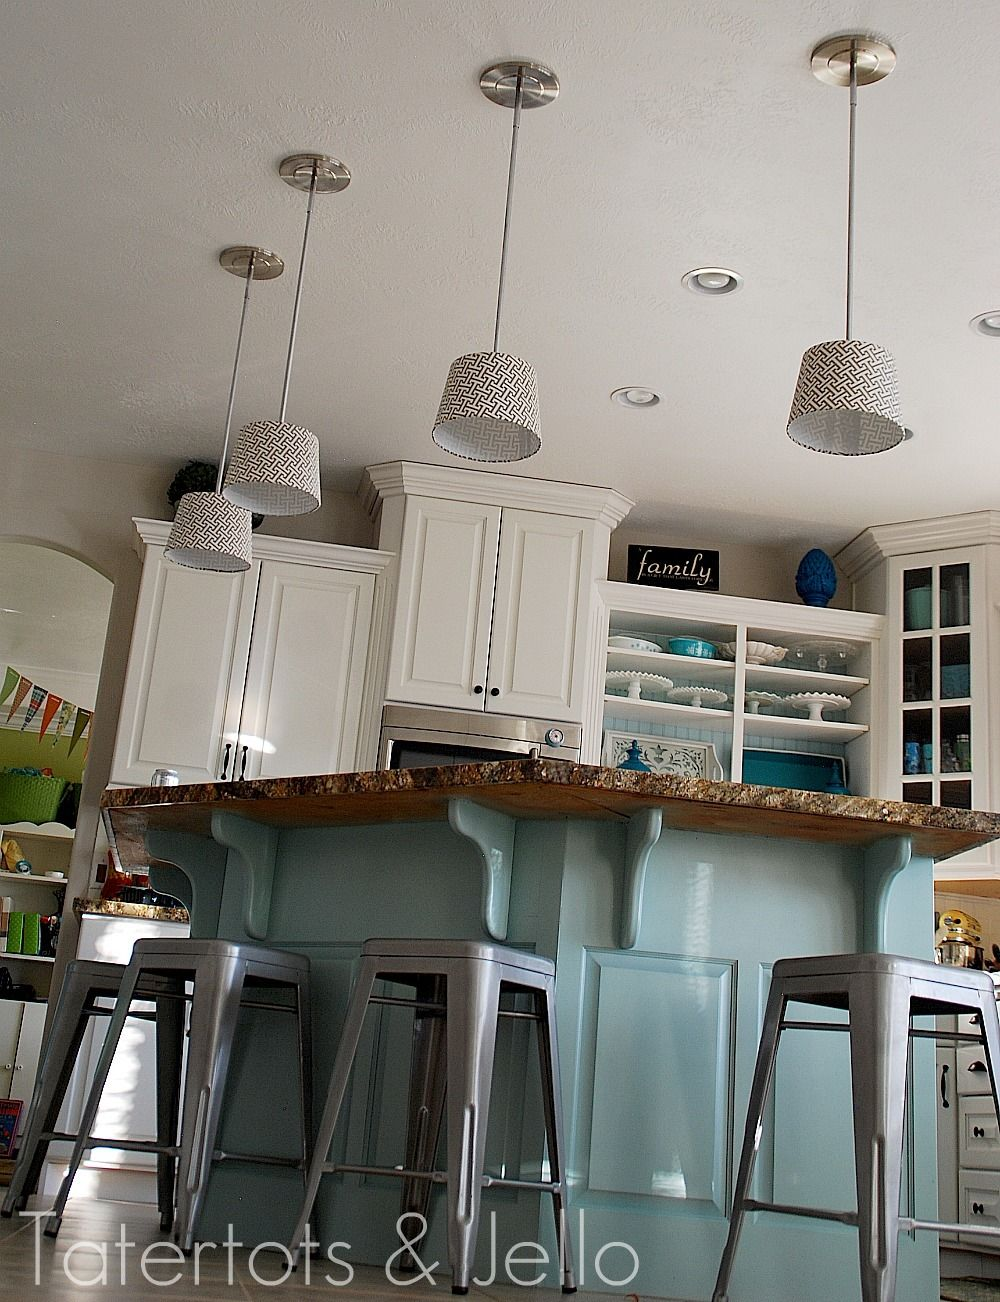 Make diy pendant lights kitchen remodel project remodeling ideas